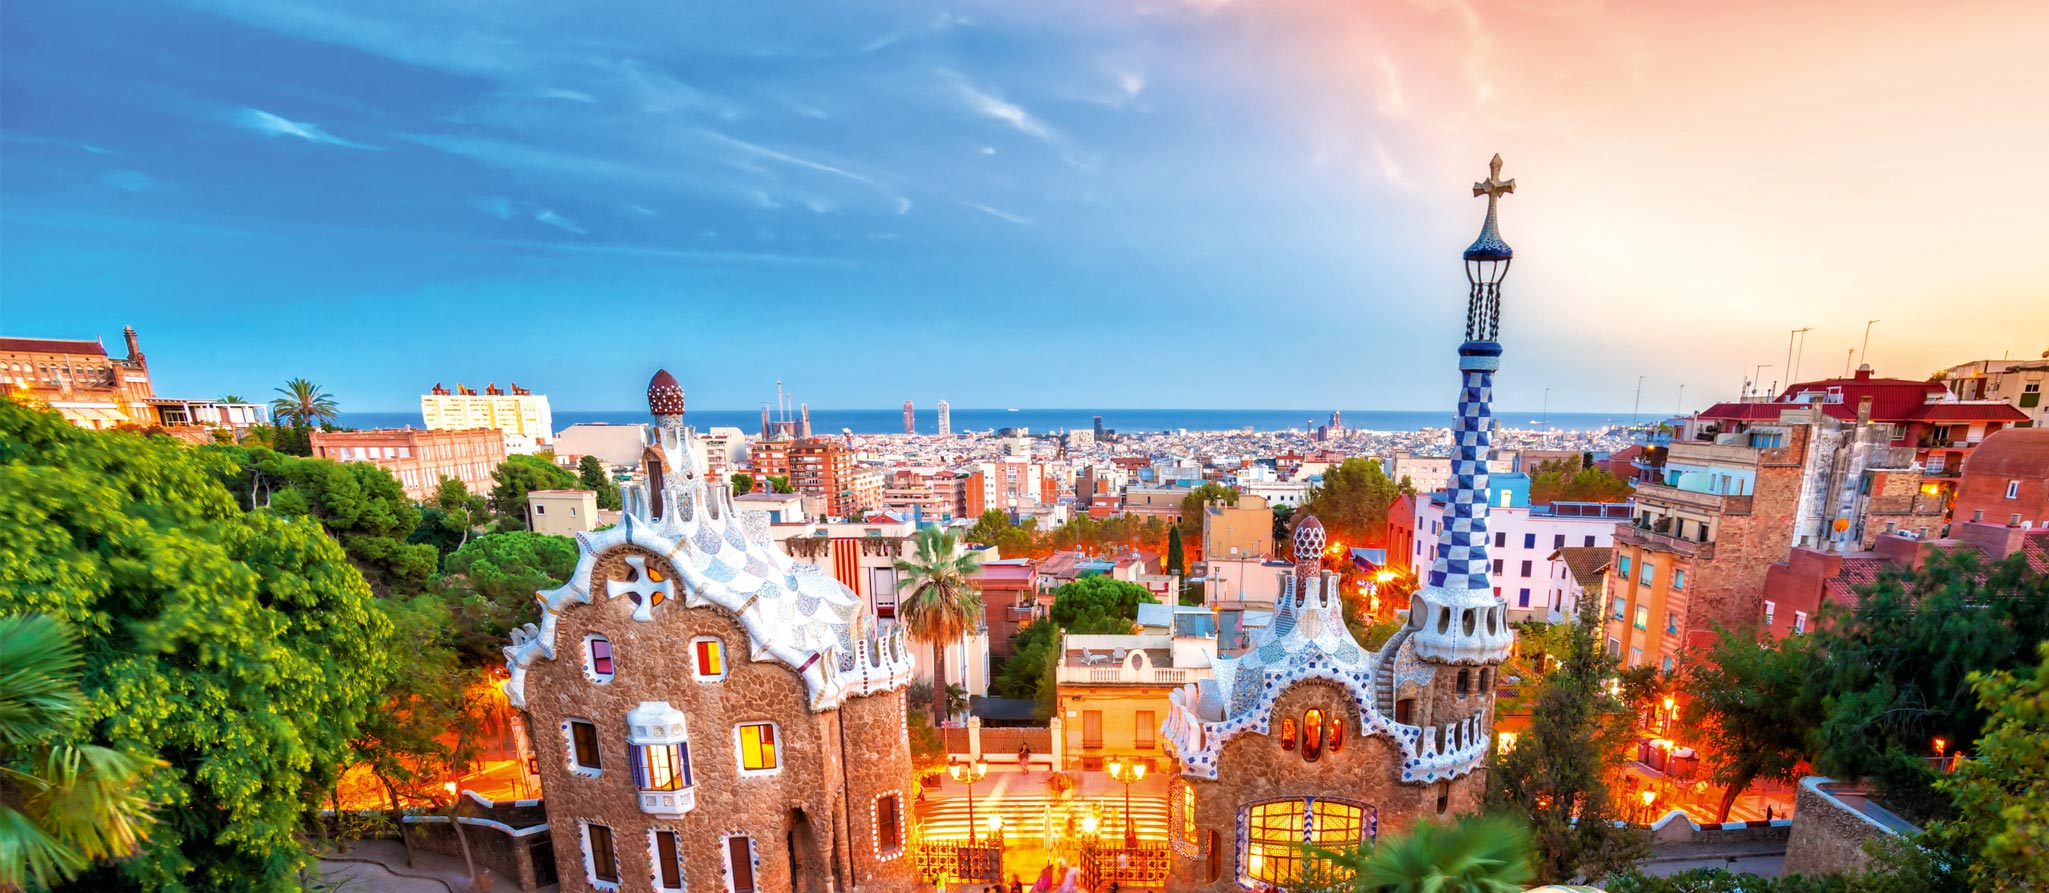 Spanish Courses in Barcelona for Adults | Sprachcaffe